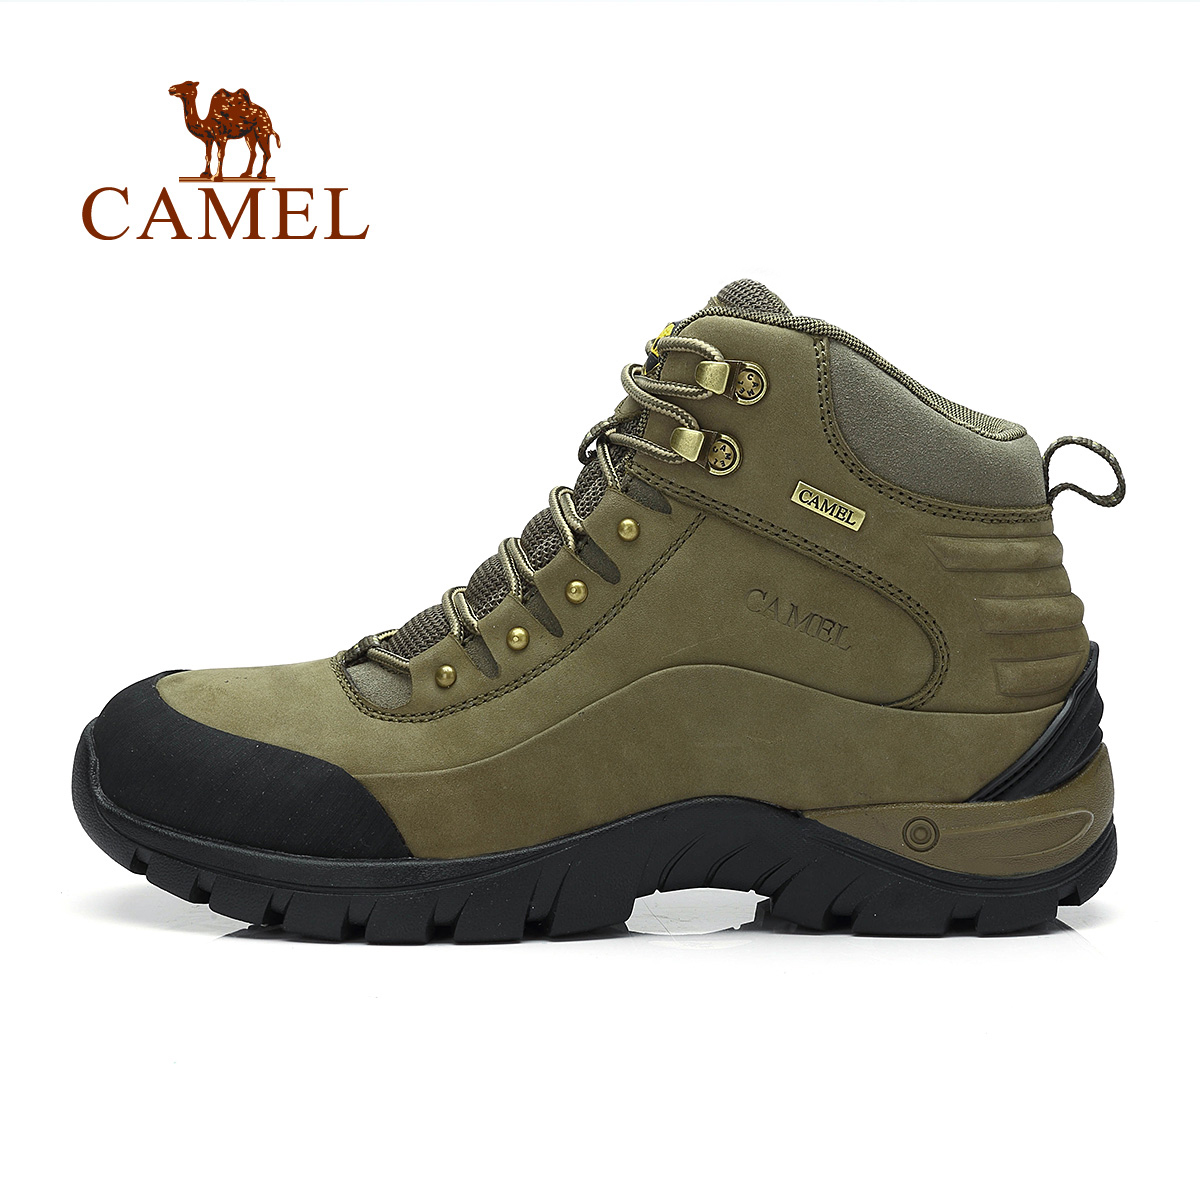 Camel Outdoor Walking Shoes Male High Wear-resistant Nubuck Leather Shoes Shock Absorption Outdoor Hiking Climbing Footwear  <br><br>Aliexpress